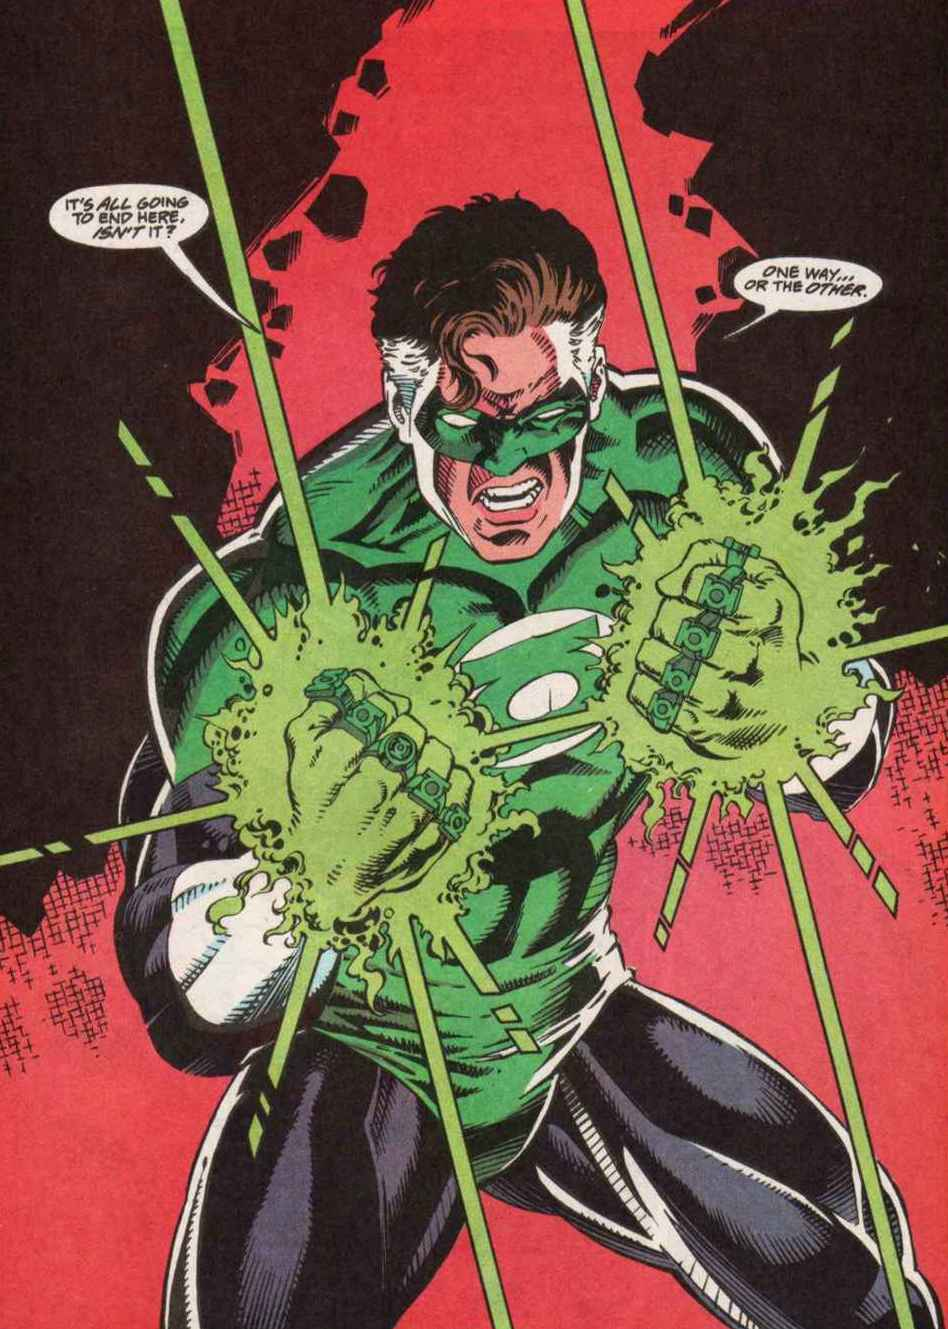 http://images.wikia.com/marvel_dc/images/a/aa/Emerald_Twilight_01.jpg